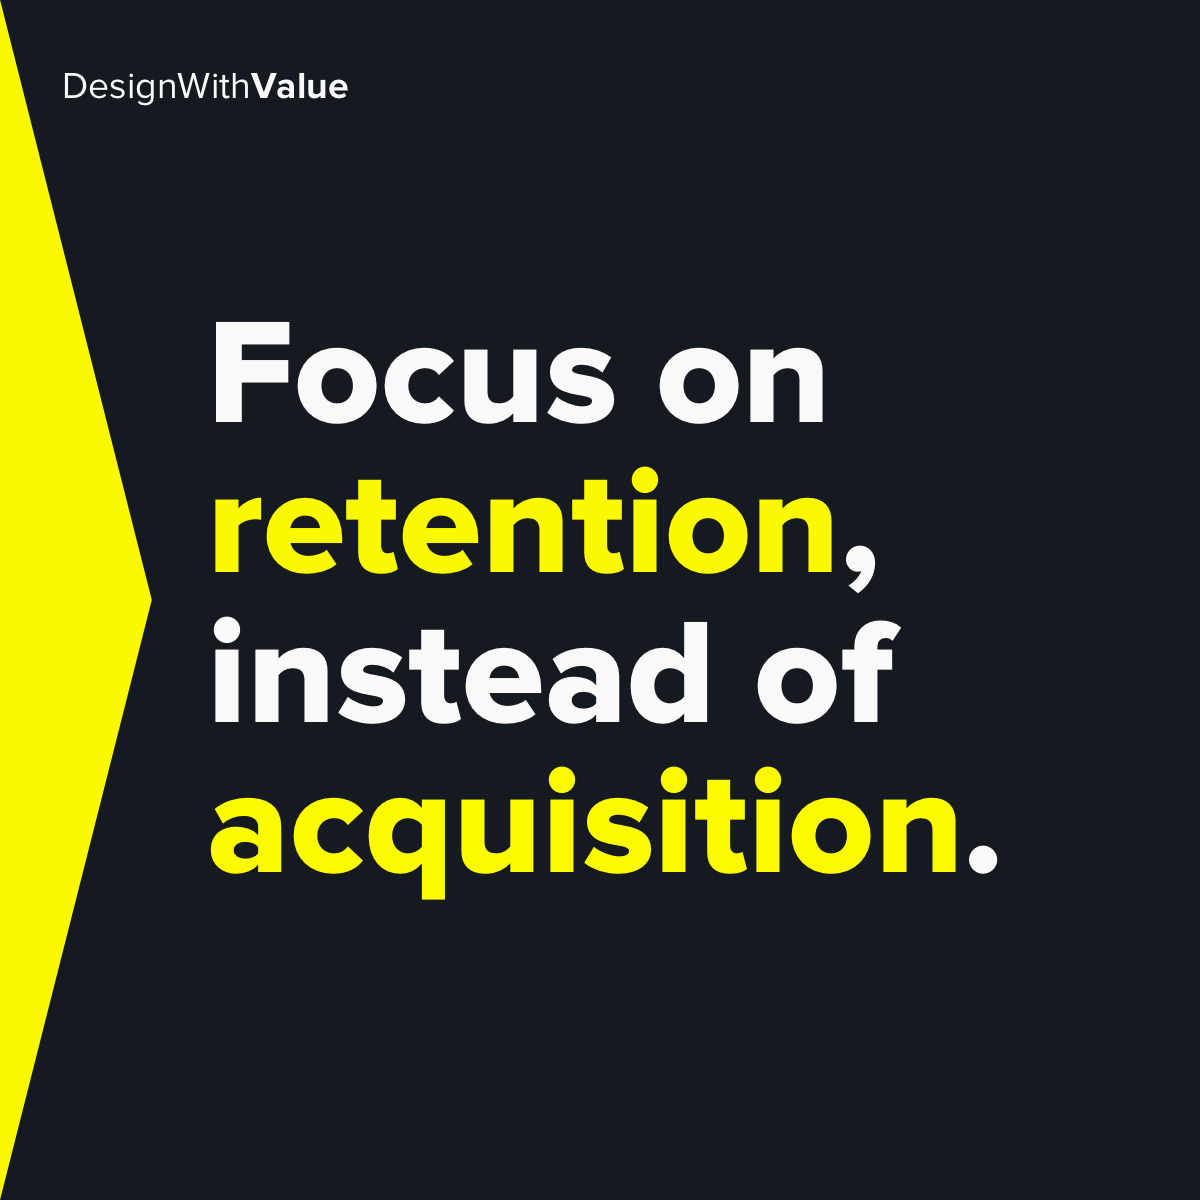 Focus on retention instead of acquisition.